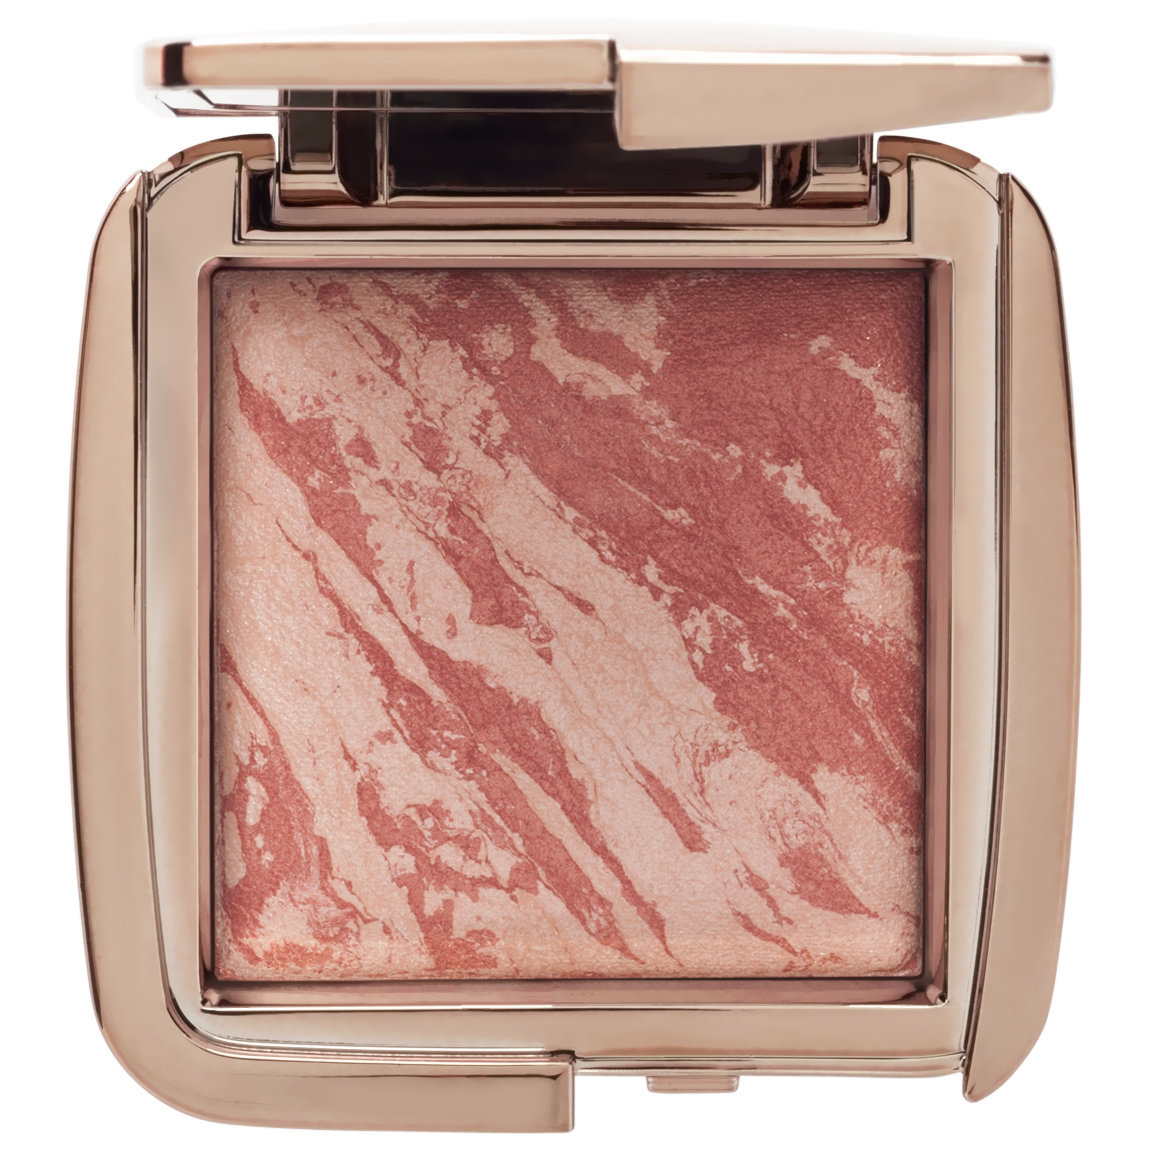 Hourglass Ambient Strobe Lighting Blush Brilliant Nude product smear.